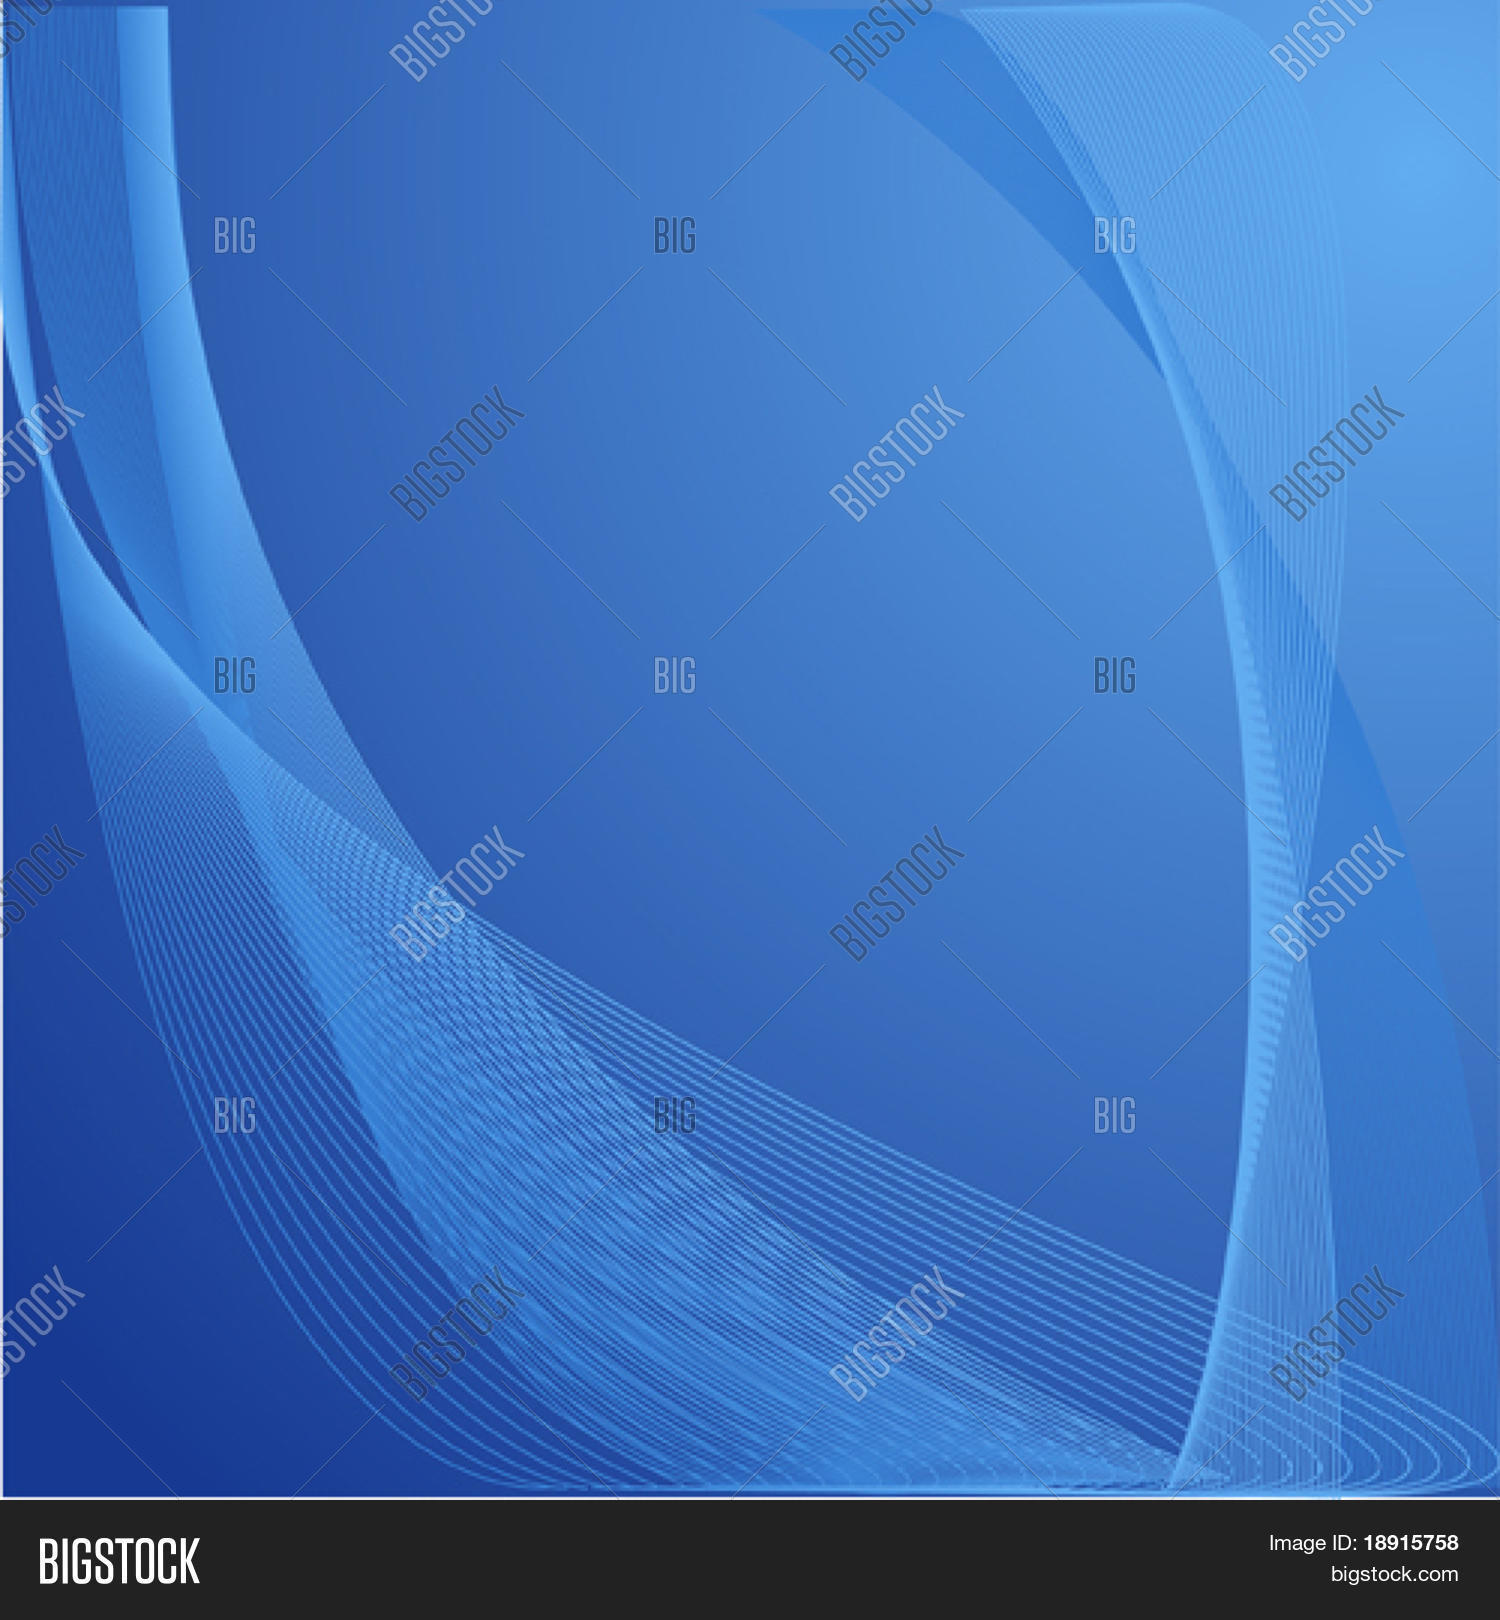 Blue Wavy Organic Vector Photo Free Trial Bigstock